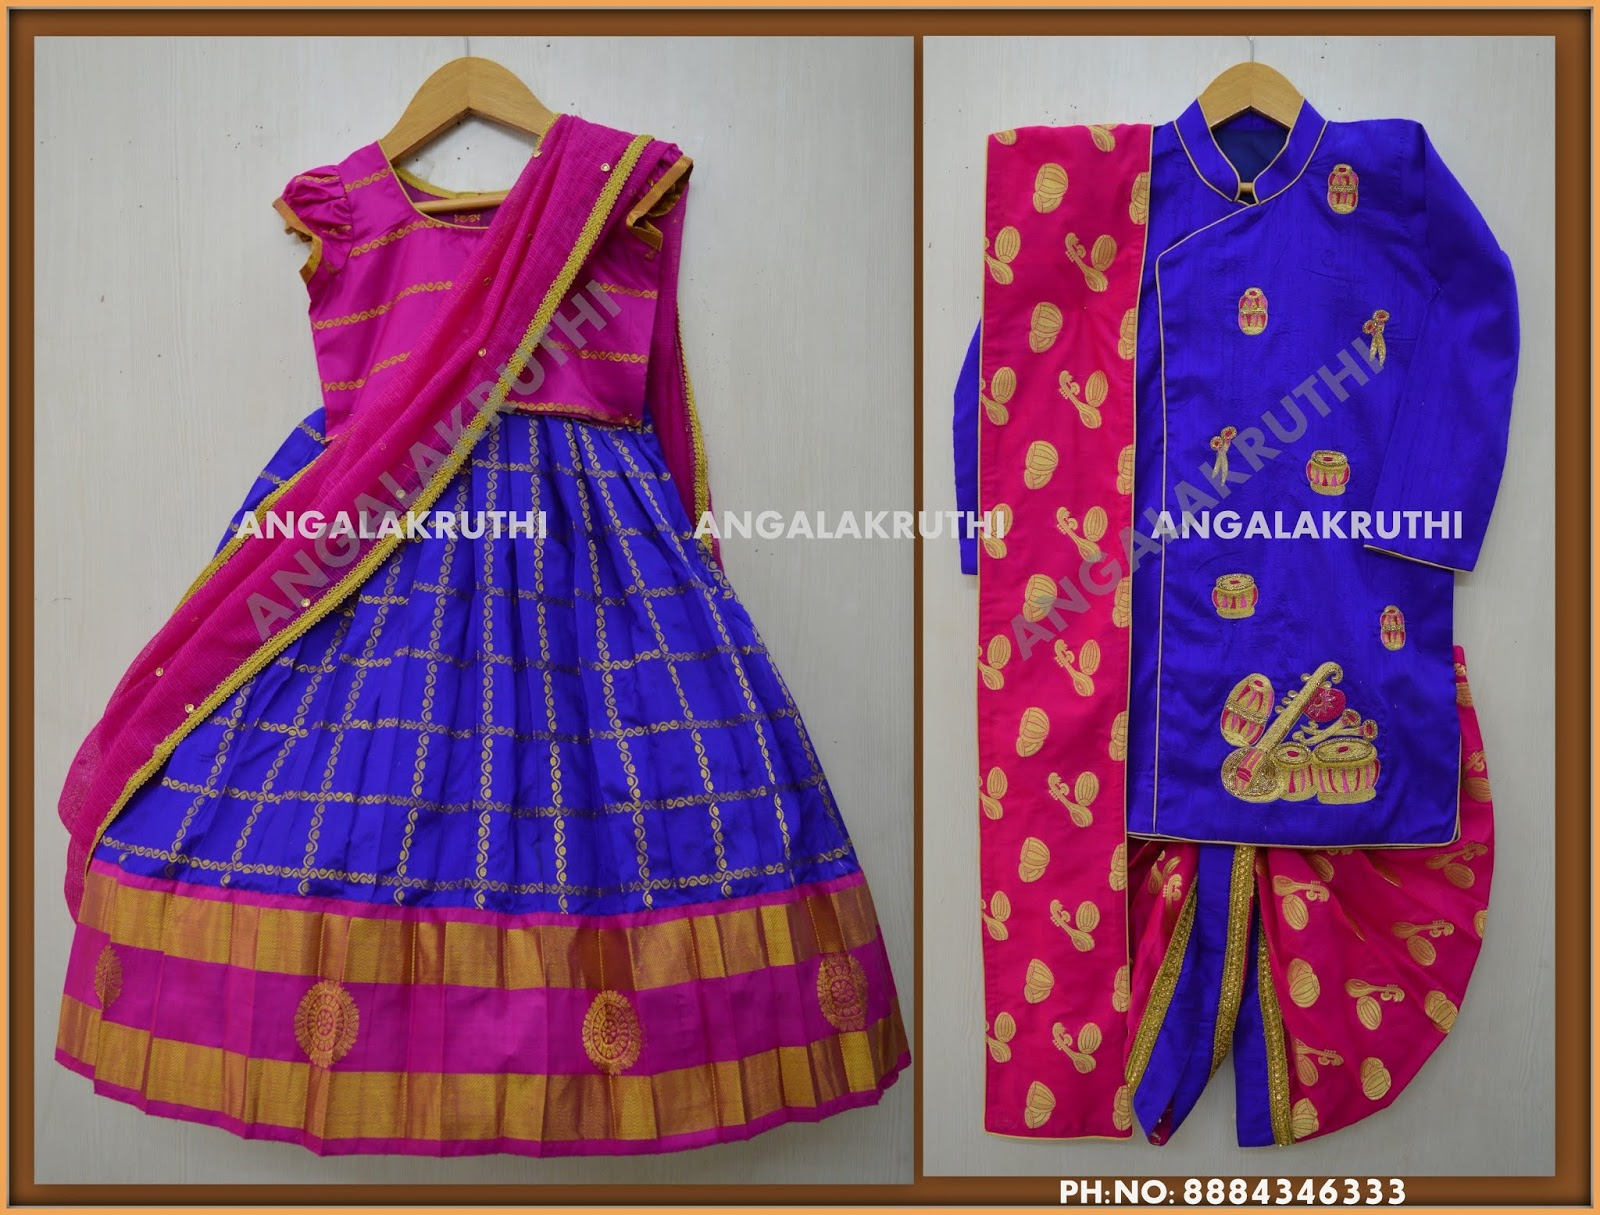 820aa336af9 Orange and yellow Kids Frock with hand Embroidery by  Angalakruthi_Bangalore. #kidsboutique in bangalore #designerboutique in  bangalore #angalakruthi ...